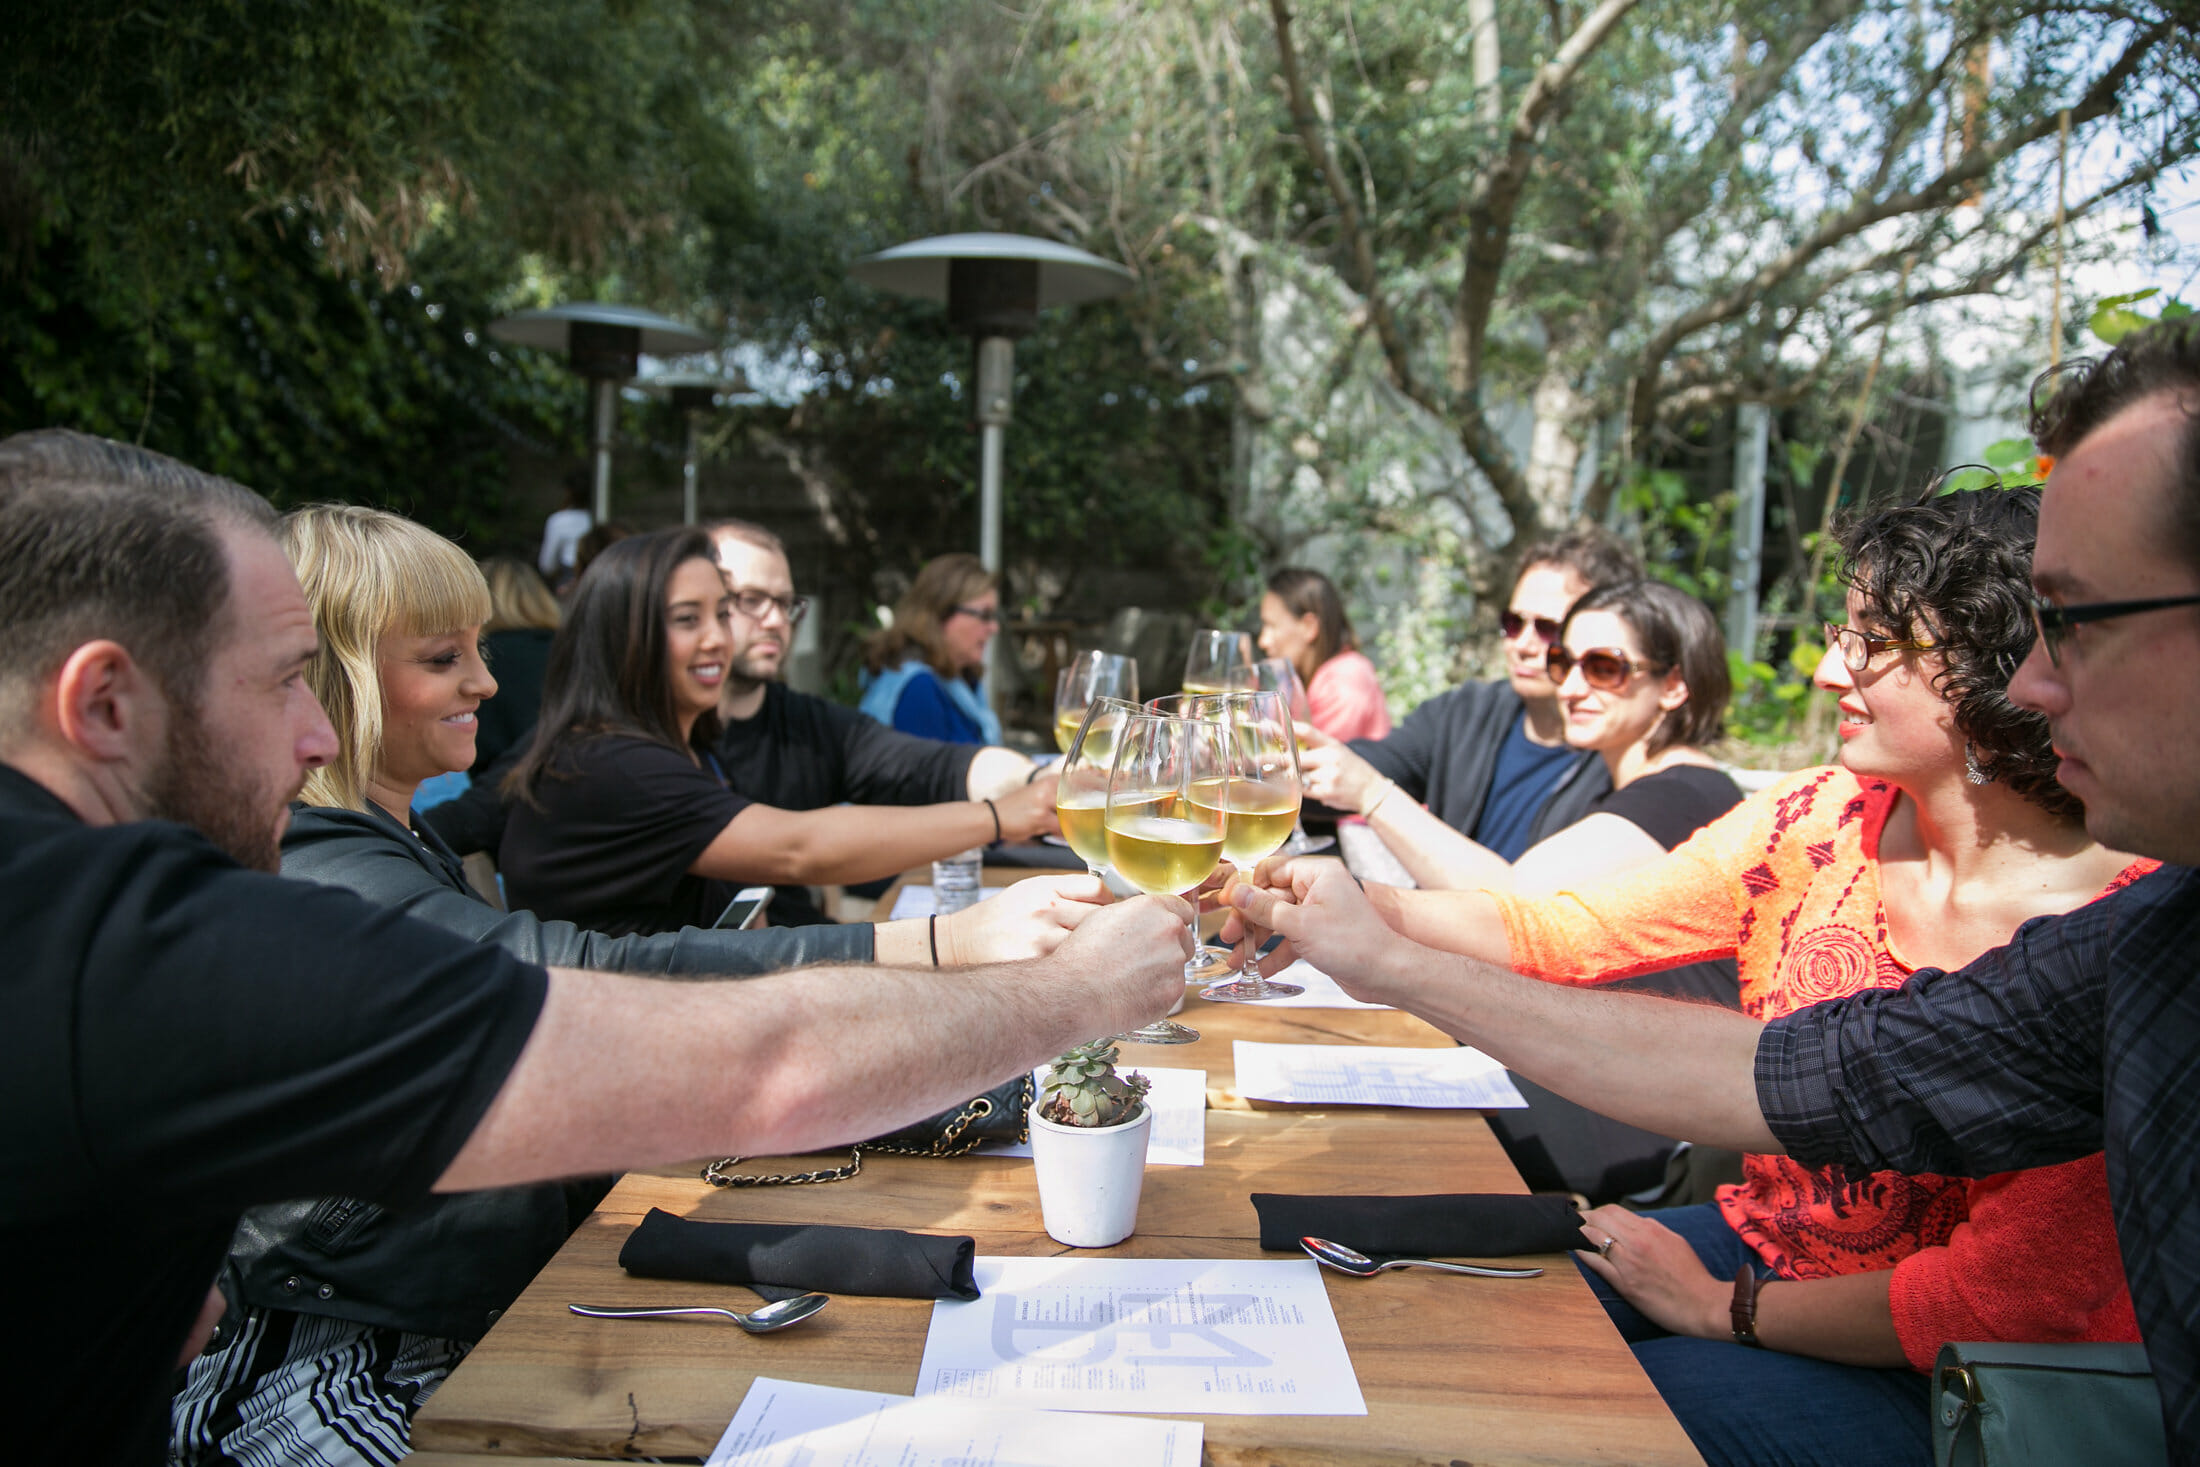 sharing a table is special, Food Tours: The Ultimate Team Building Icebreaker